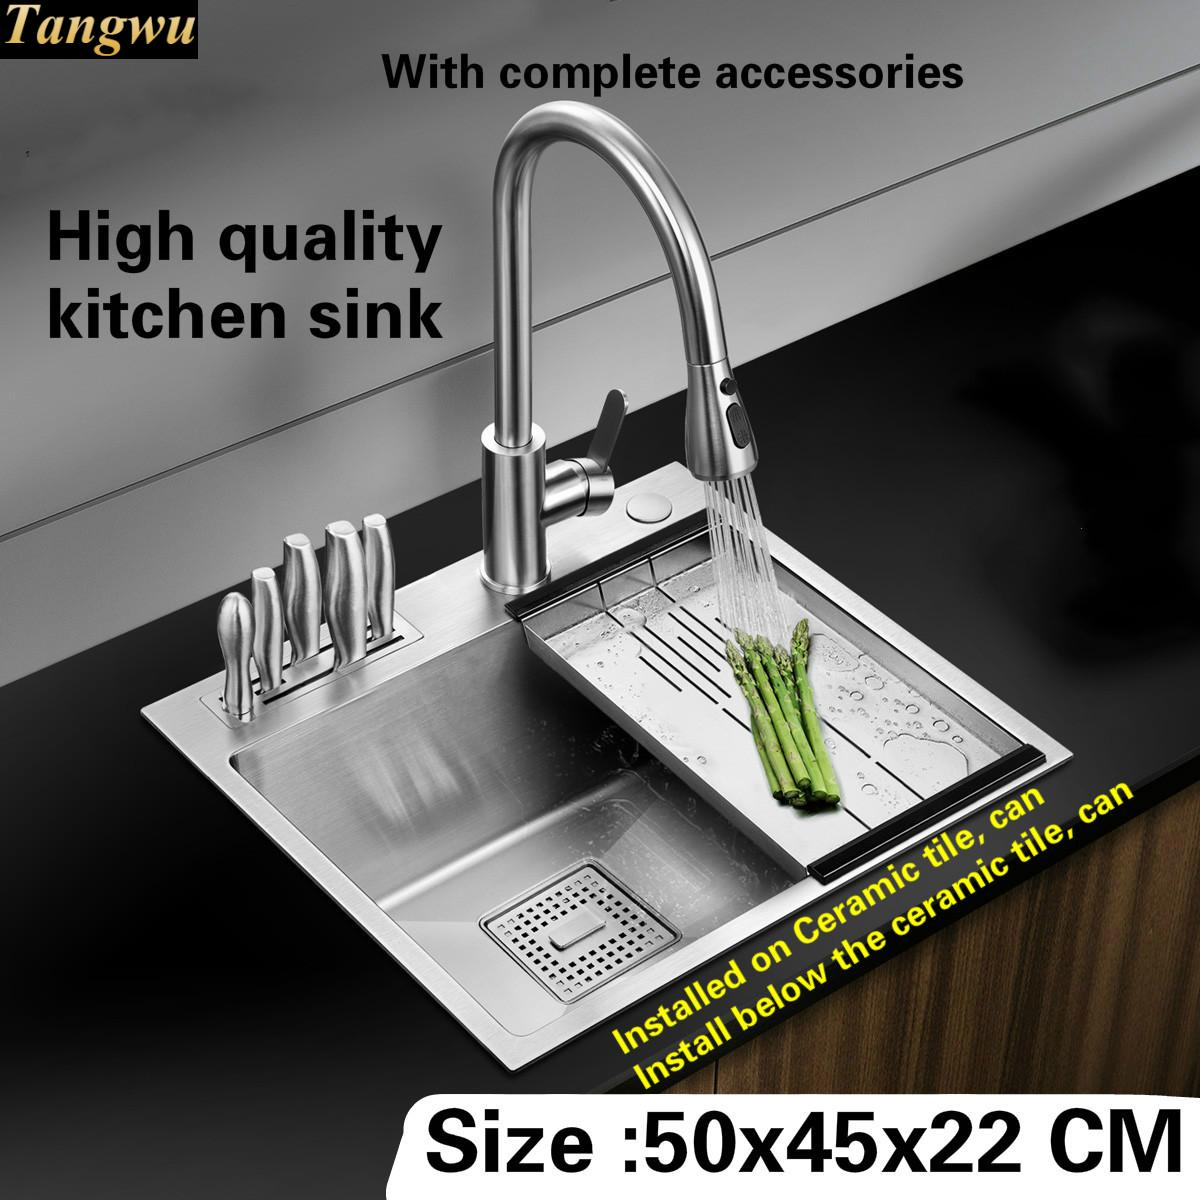 Tangwu High quality food grade 304 stainless steel kitchen sink 4 mm small single slot by hand durable 50x45x22 CM fast food leisure fast food equipment stainless steel gas fryer 3l spanish churro maker machine